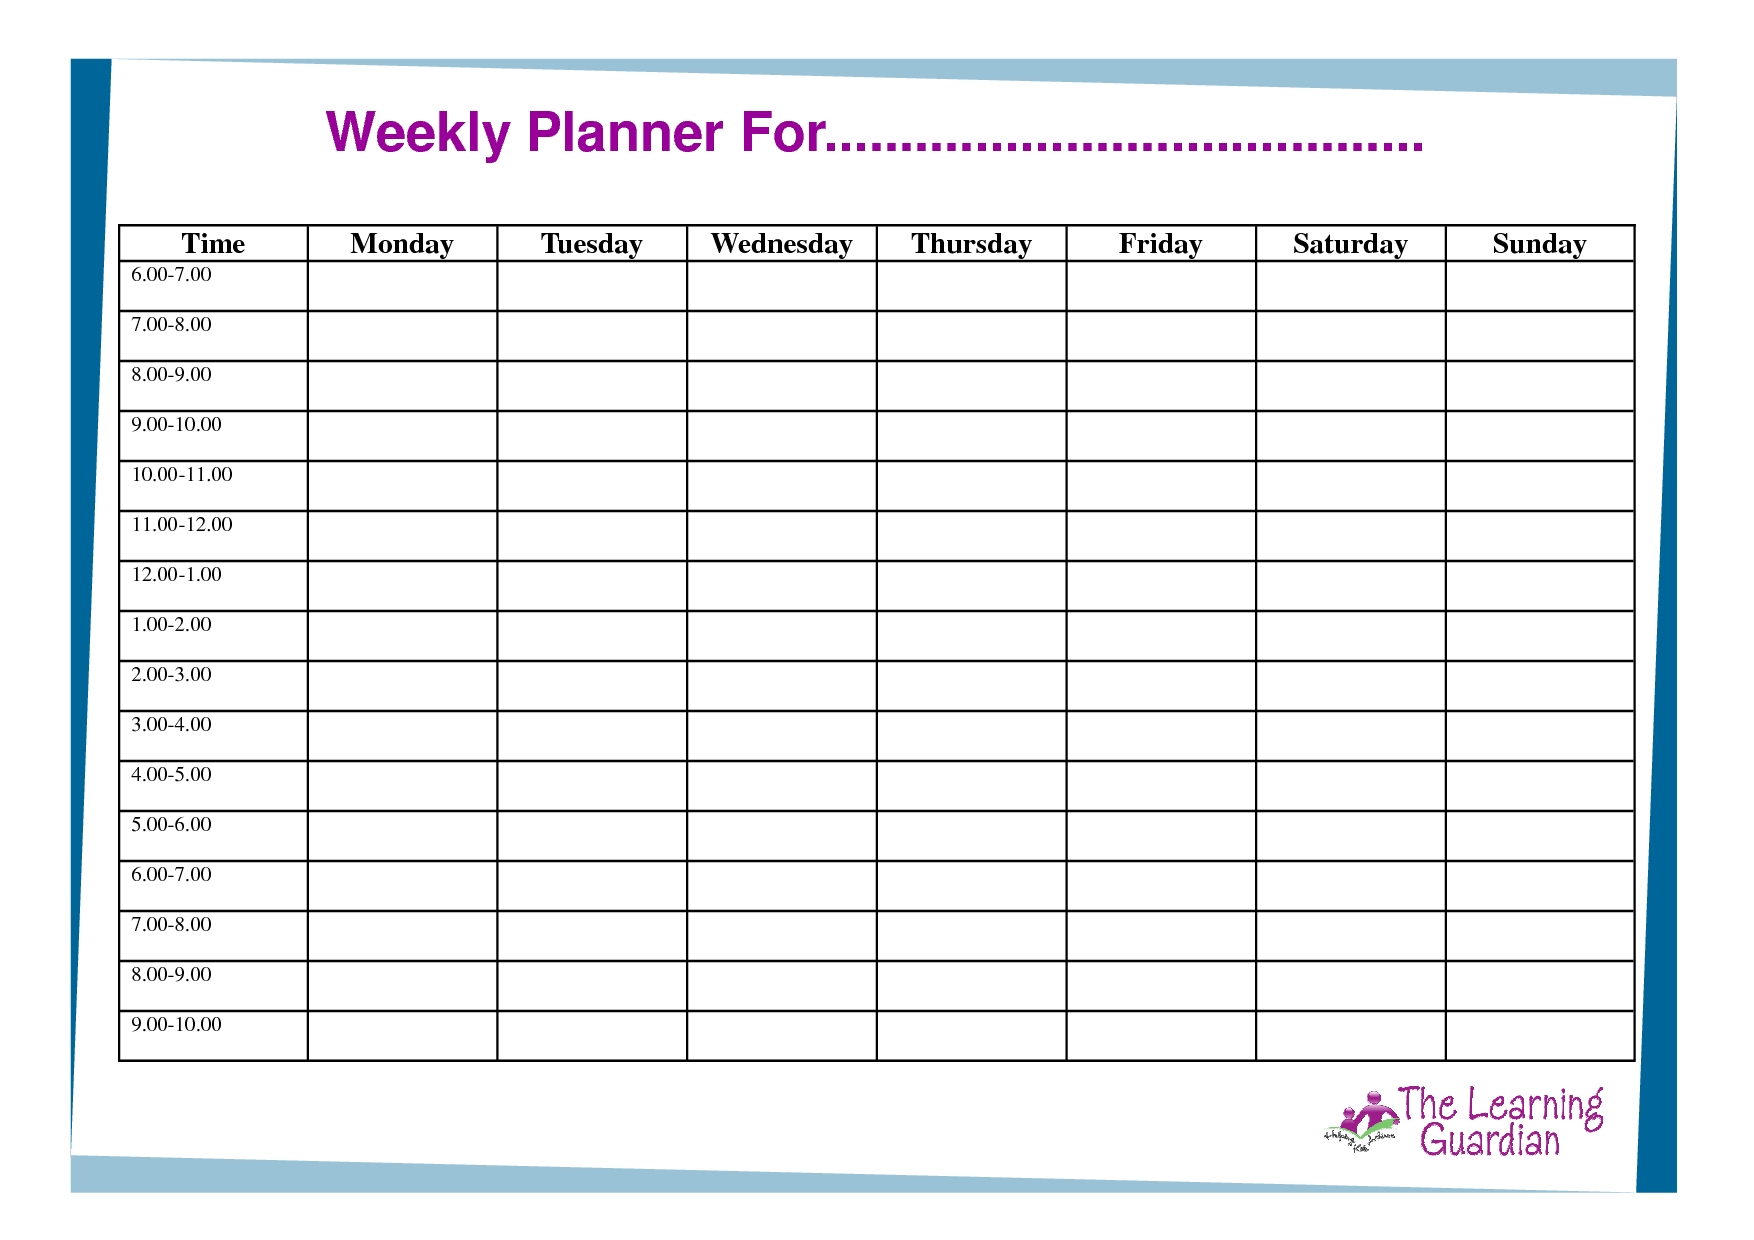 Free Printable Weekly Calendar Templates | Weekly Planner For Time with regard to Calendar Weekly Menu Print Outs